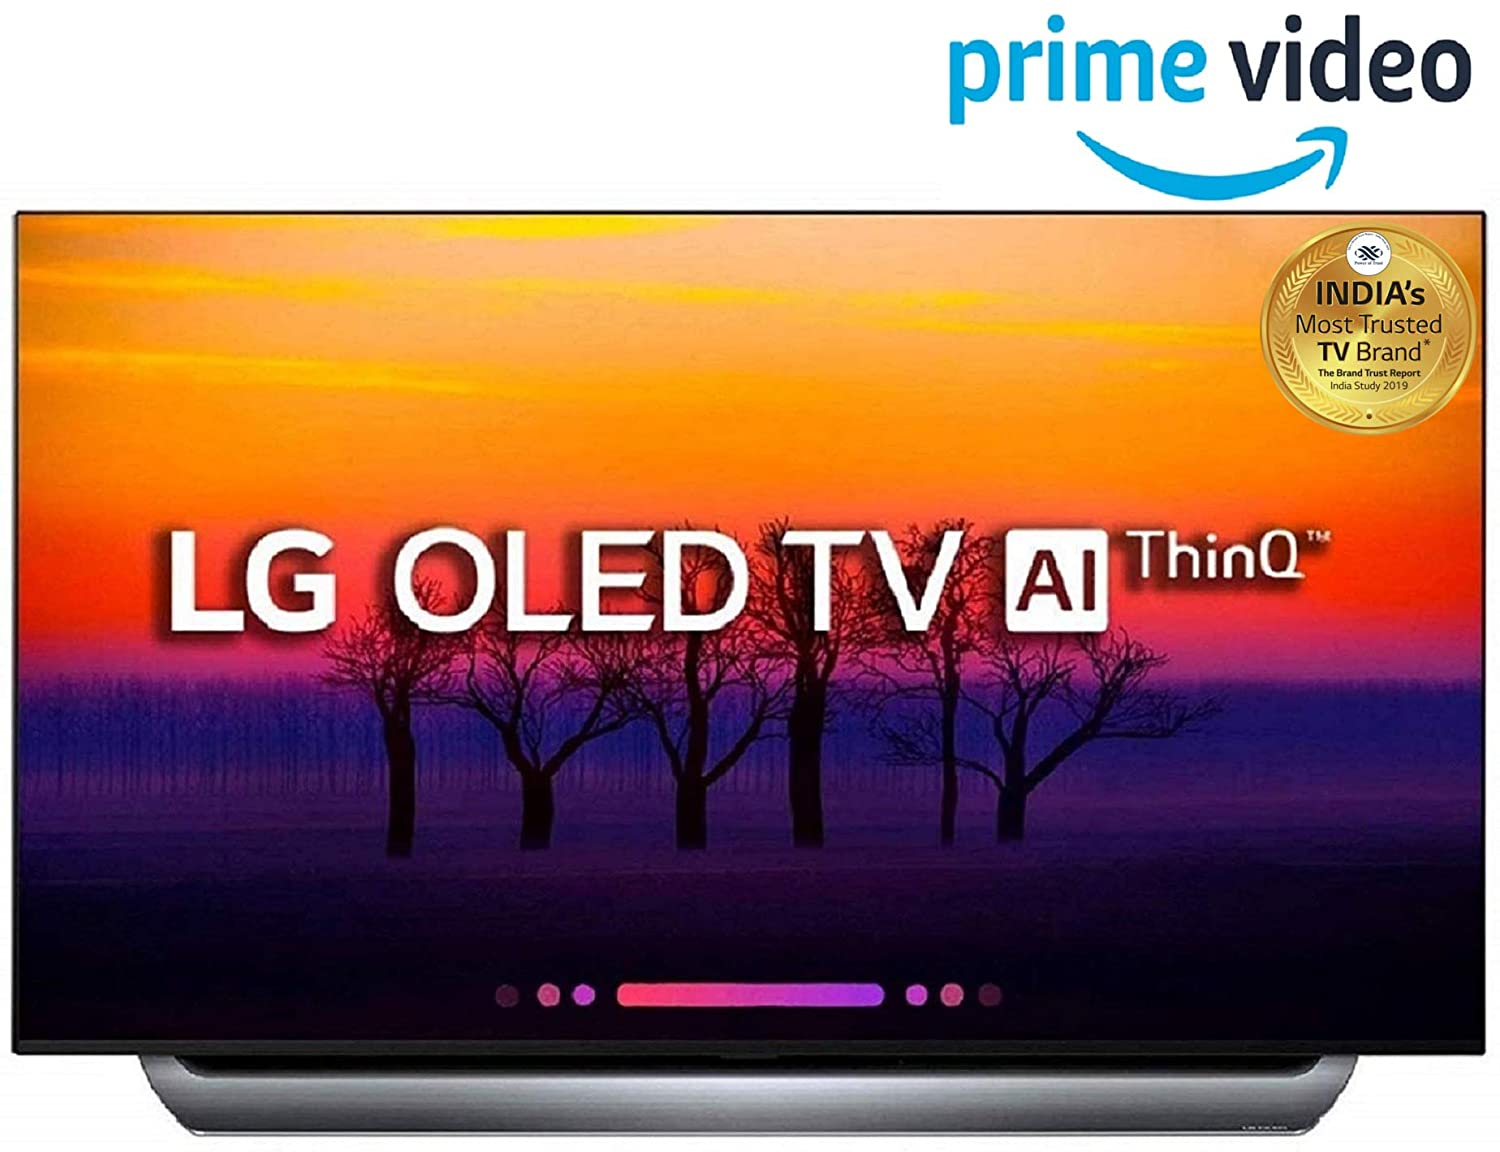 Best OLED TVs in India - Best 55 Inch LG OLED TV in India - LG OLED Smart TV OLED55C8PTA